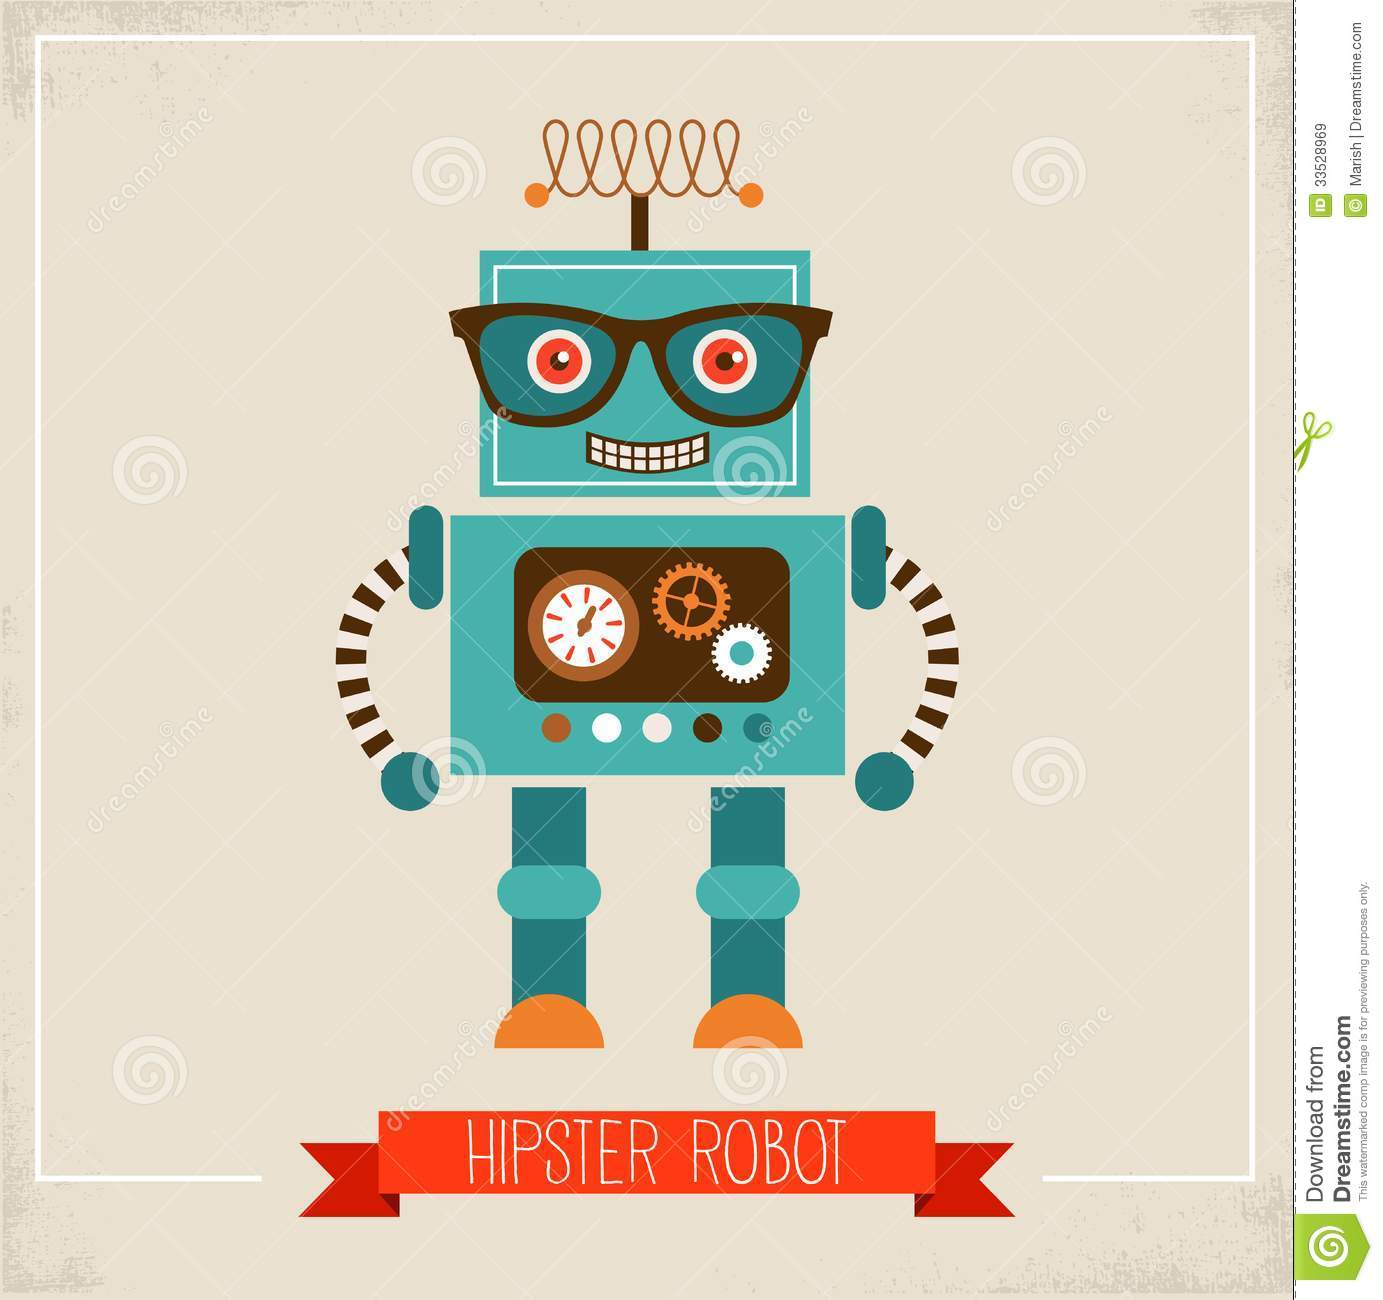 Hipster Robot Toy Icon Royalty Free Stock Images - Image: 33528969